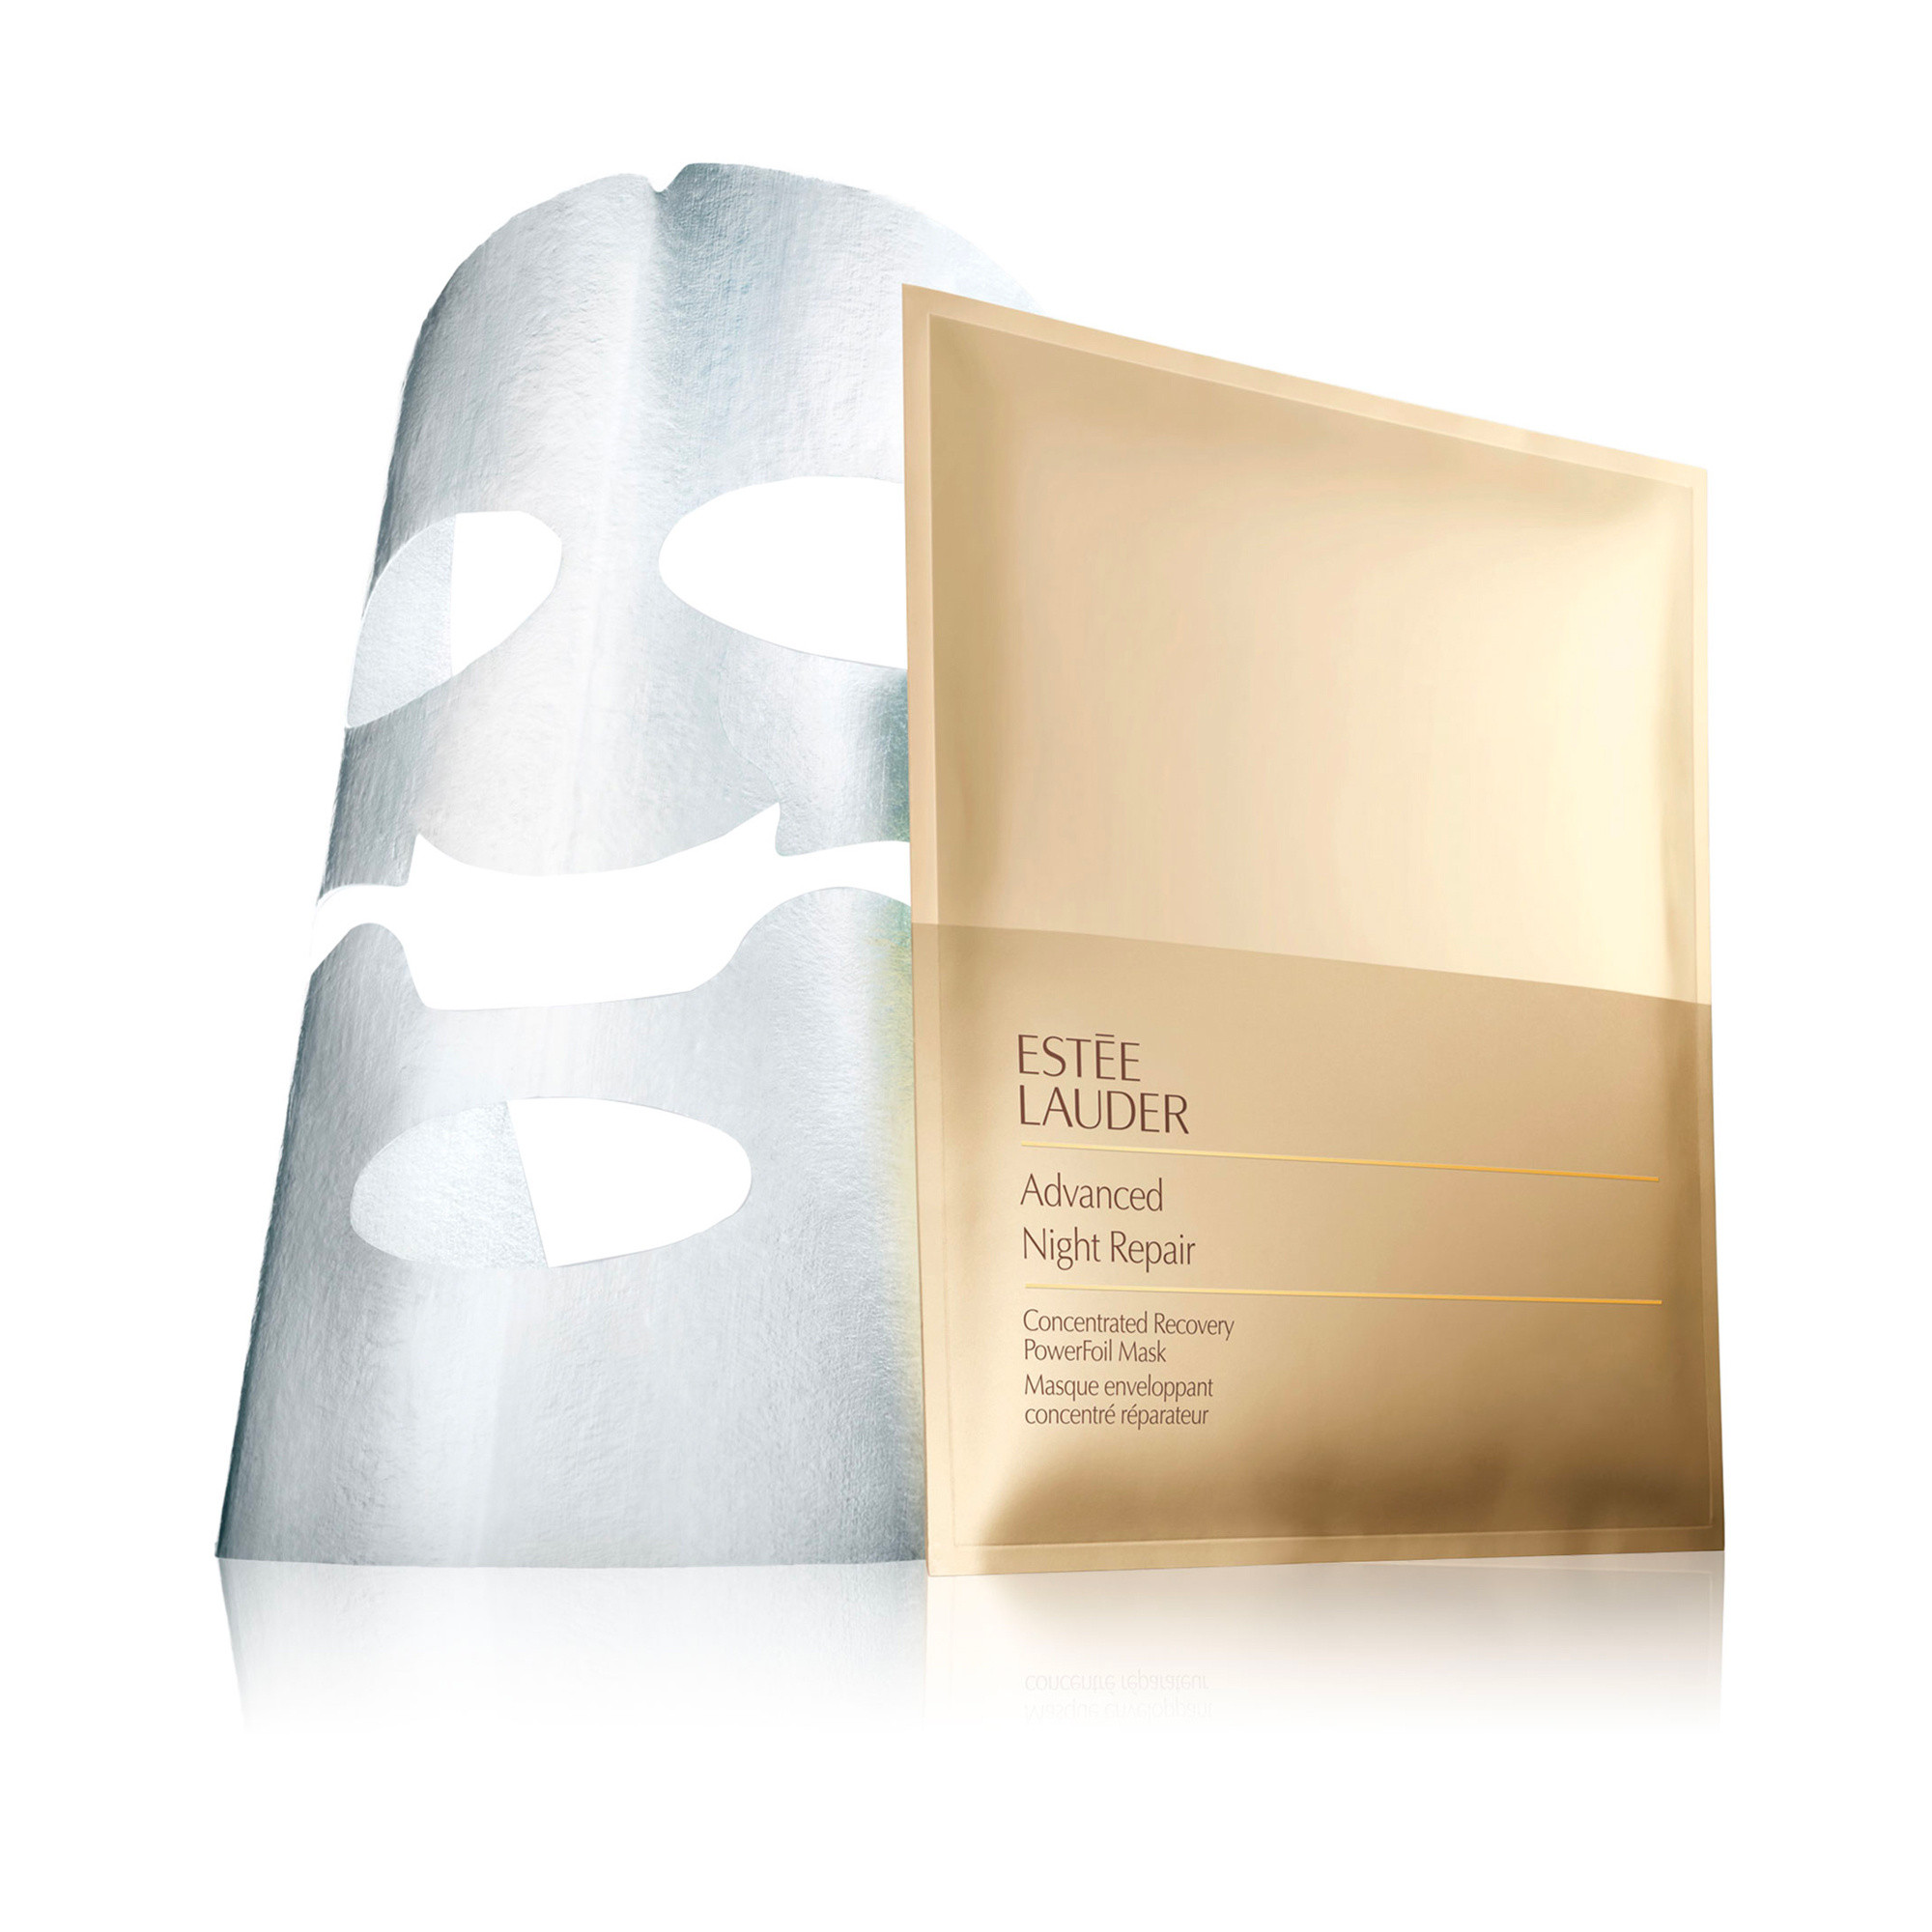 Estée Lauder advanced night repair concentrated recovery powerfoil mask x4  4 pcs, Azzurro, large image number 0